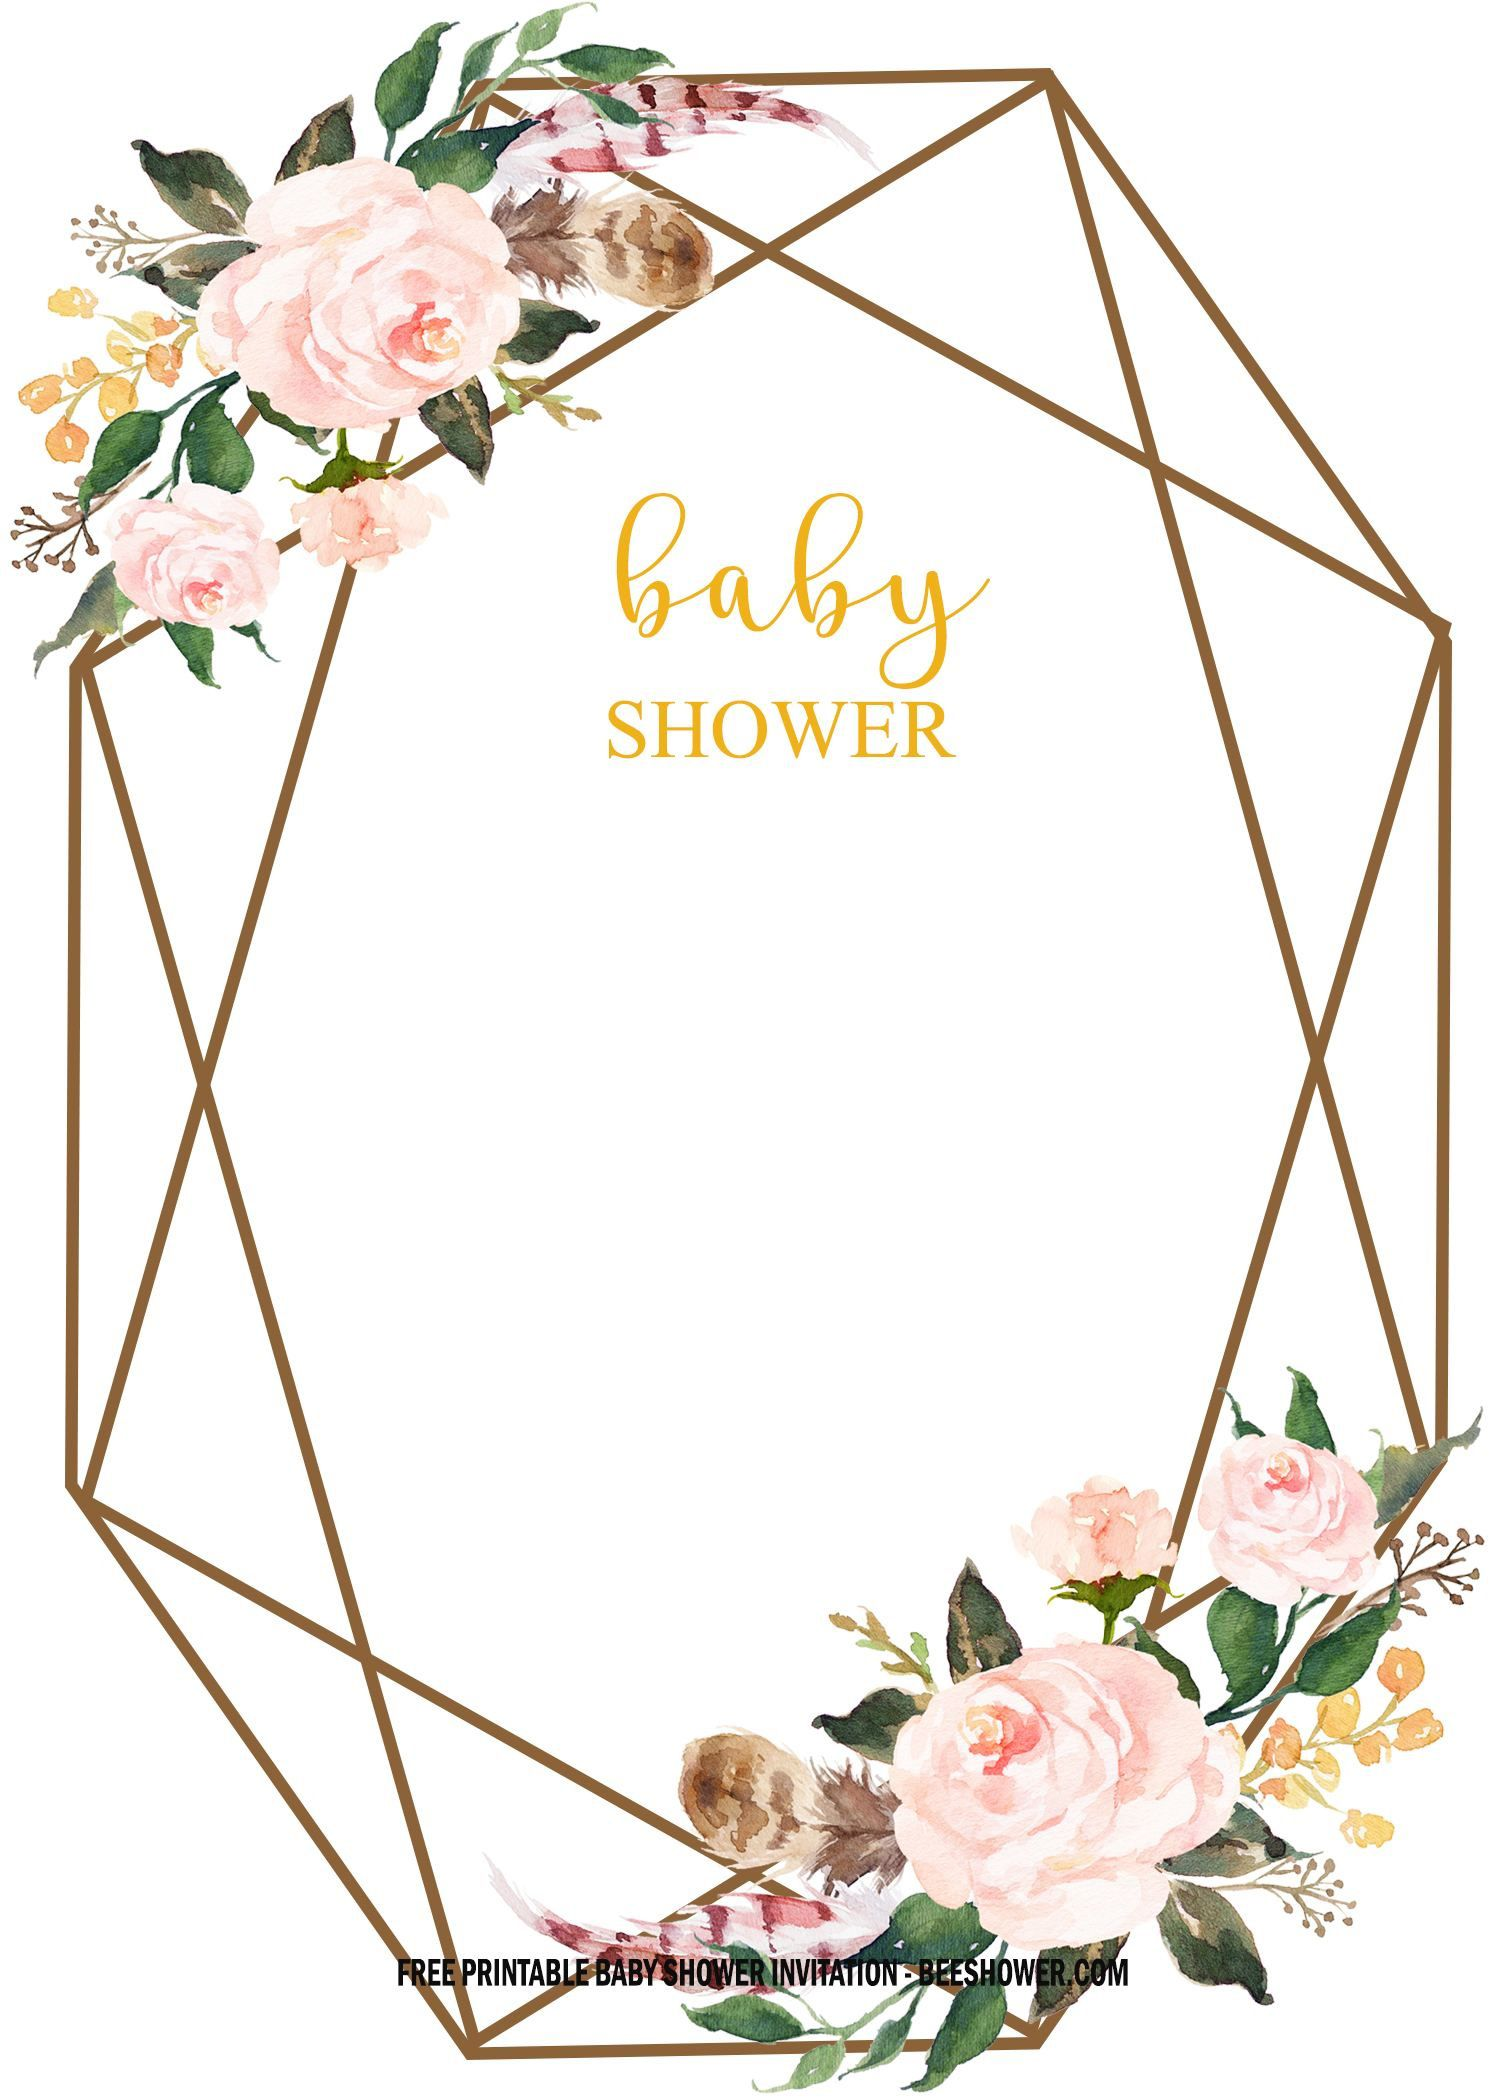 005 Marvelou Baby Shower Invitation Free Template Example  Templates Online Printable E-invitation Card Design DownloadFull